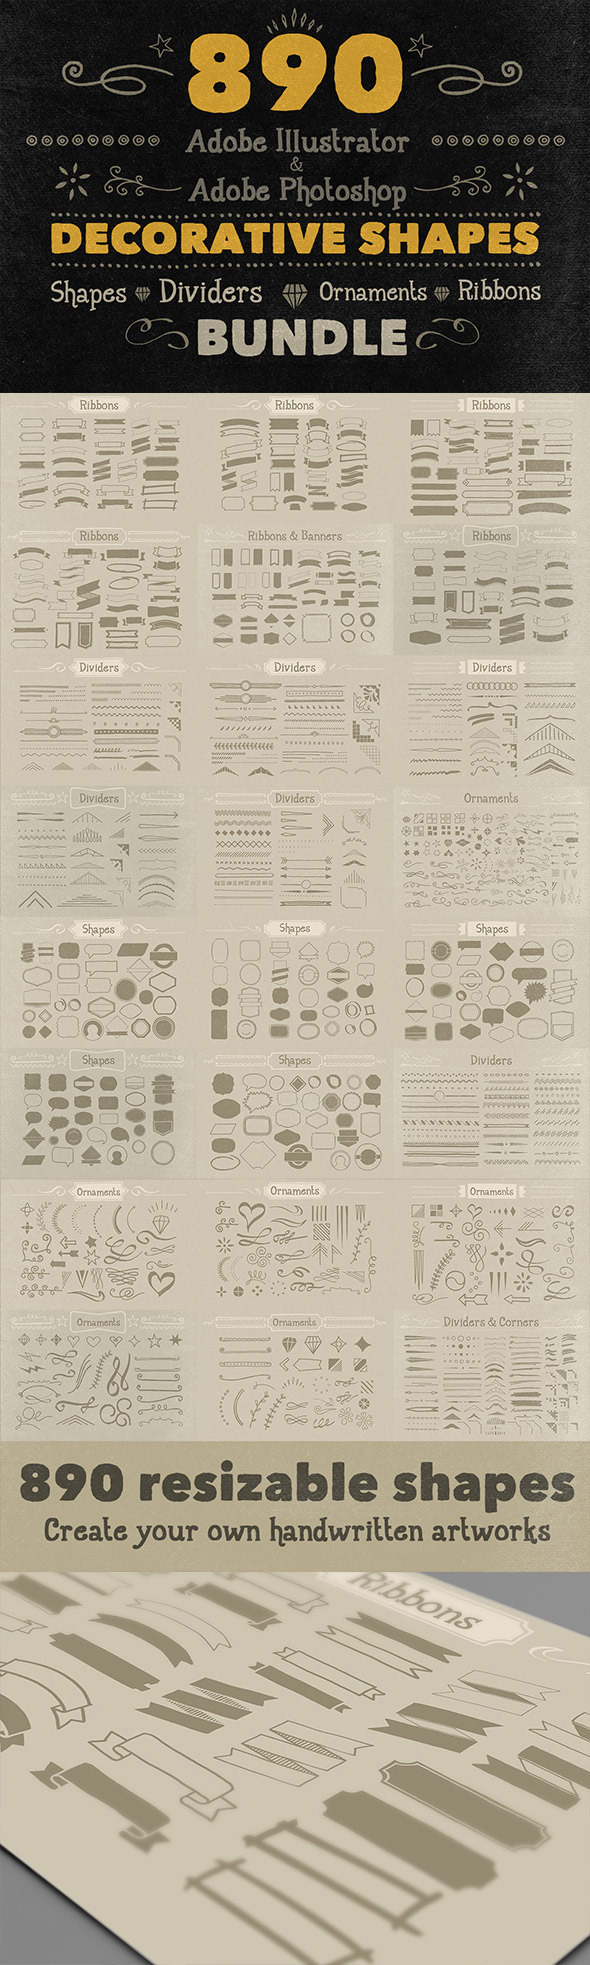 890 Handwritten Shapes Bundle